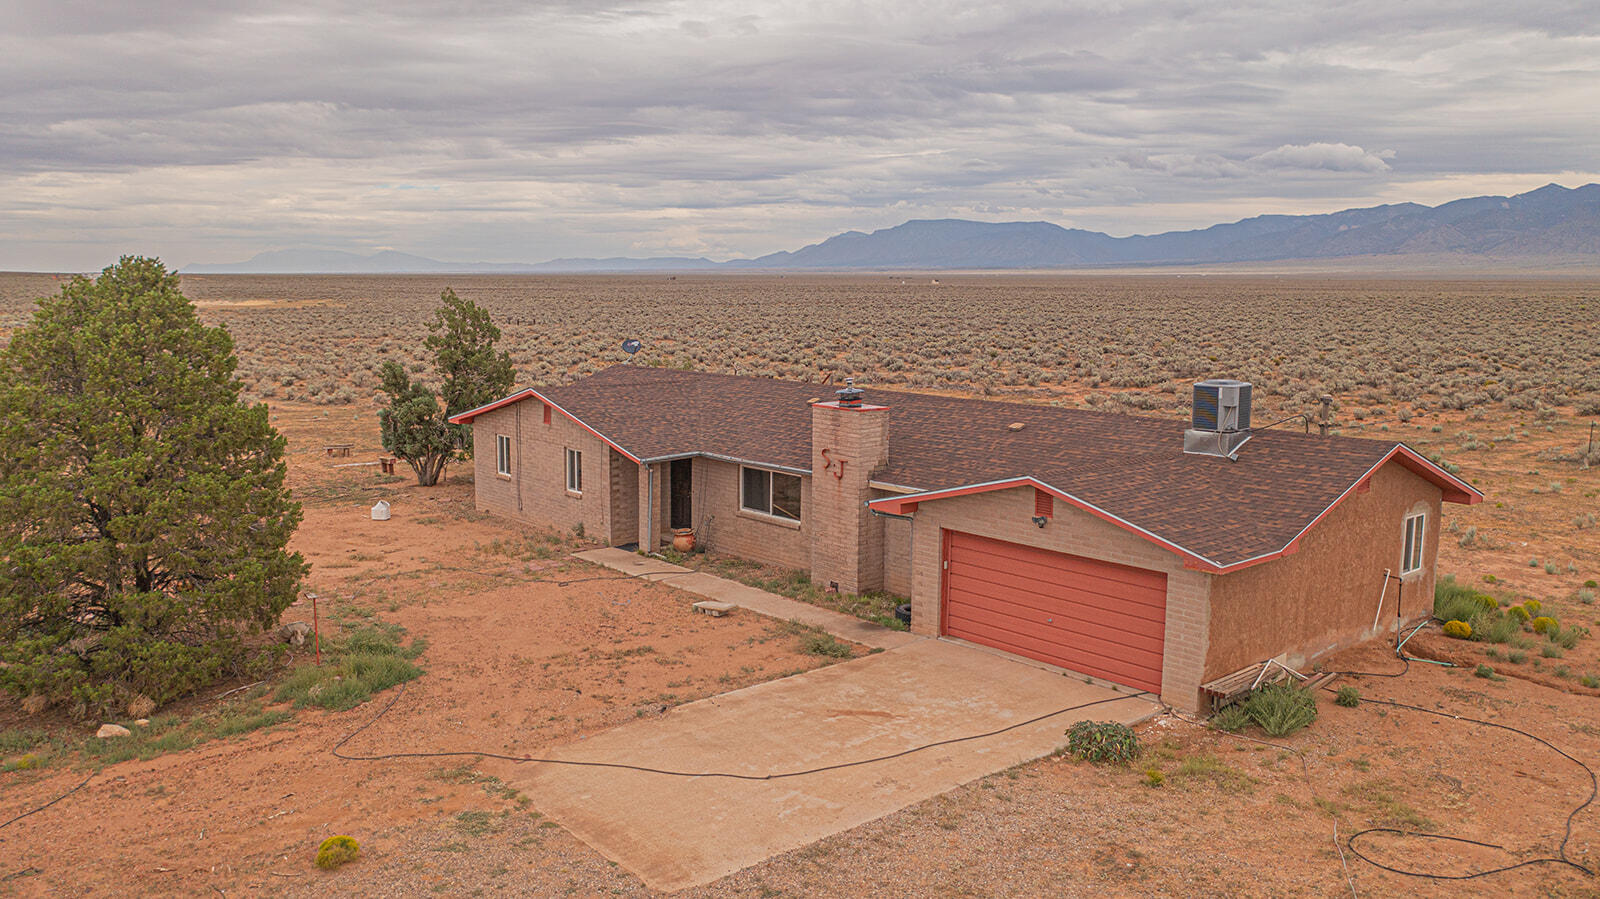 Custom home that sits on 10.82 acres. (Property can be split and build another home on it). The views of the Manzano mountains are gorgeous. Open floorplan that has a large kitchen and dining connected to the family room. Bonus sun room attached to home, bonus office or bedroom or even a hobby room is another extra to this custom home. Fully fenced. Out buildings for storage. Bring the animals and enjoy the privacy. Close enough for shopping and commute but far enough away so very little noise. Home is in process of being cleaned.